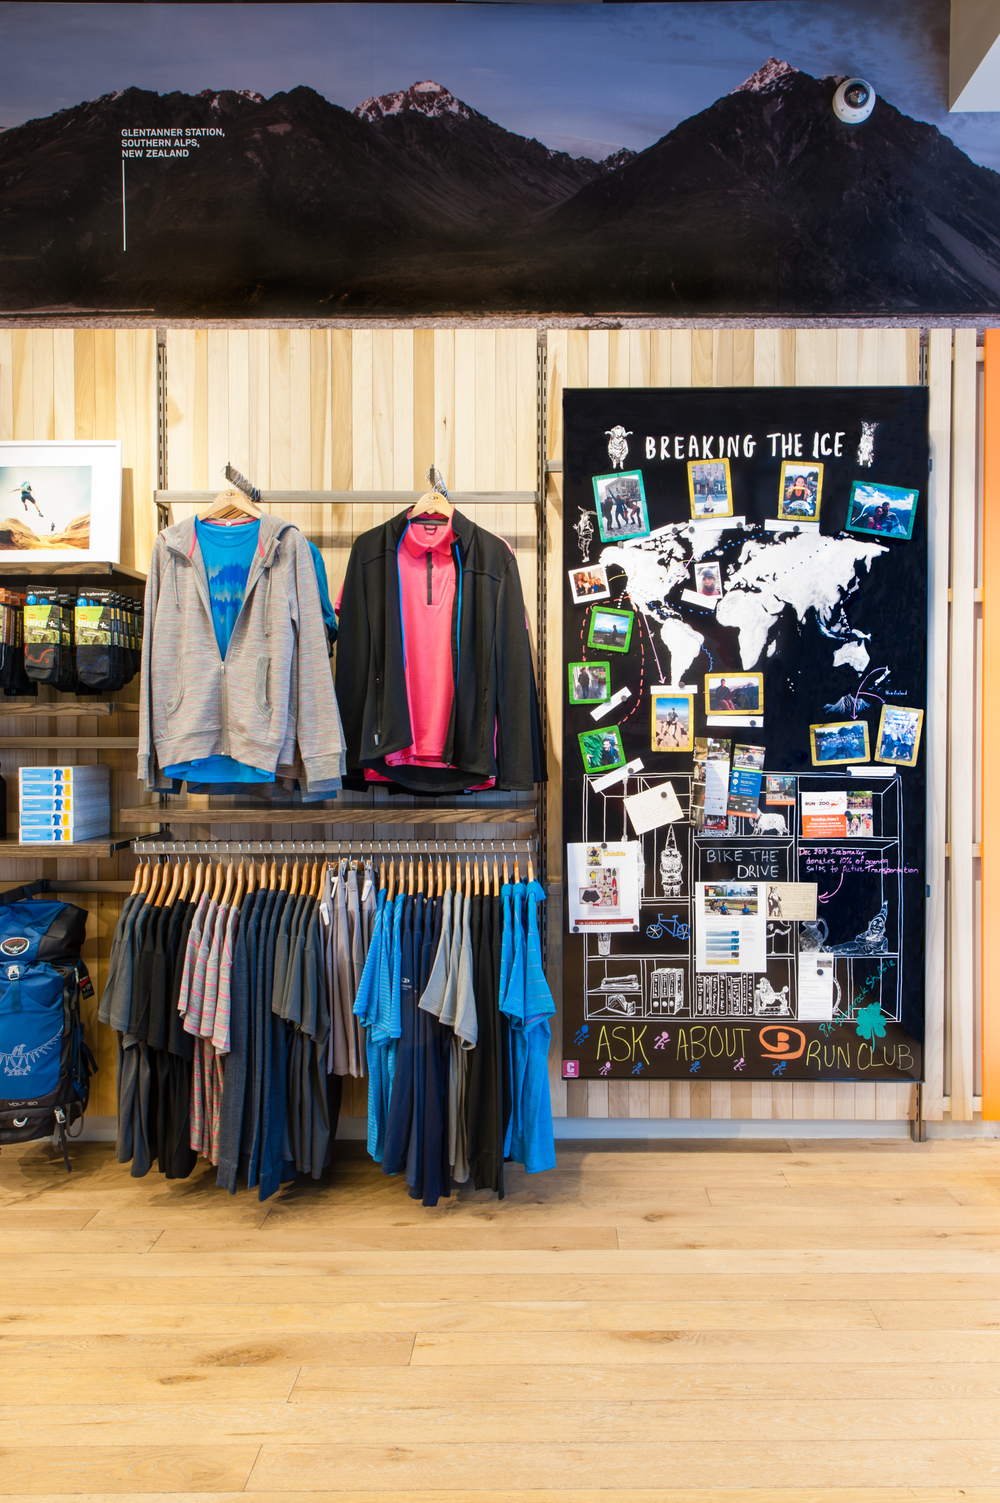 Backwall Display and Merchandising